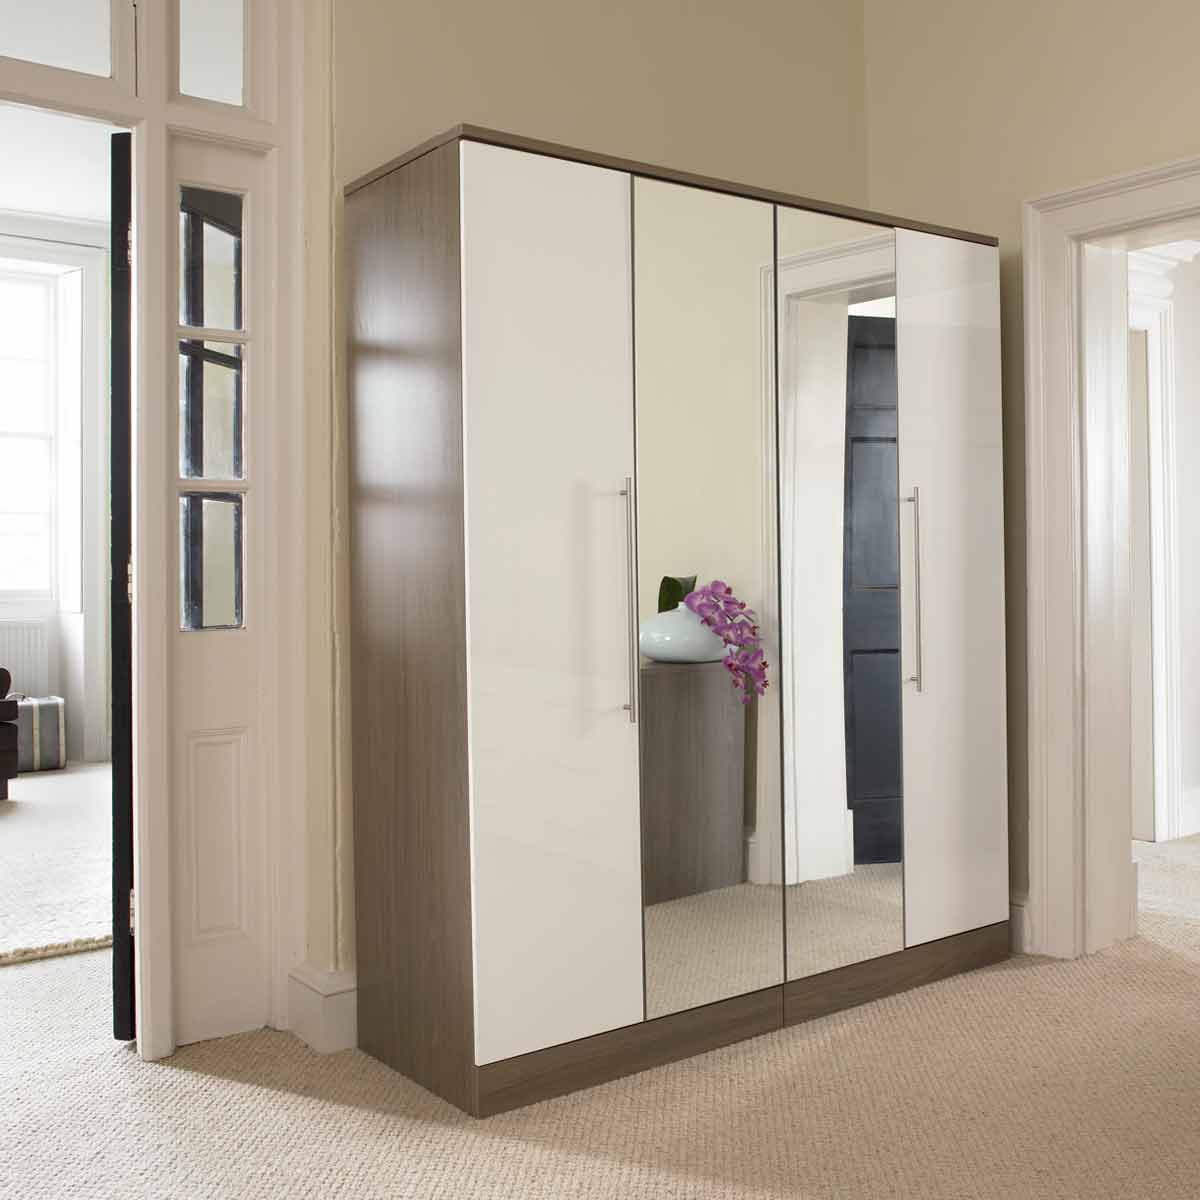 mirrored closet doors modern photo - 5